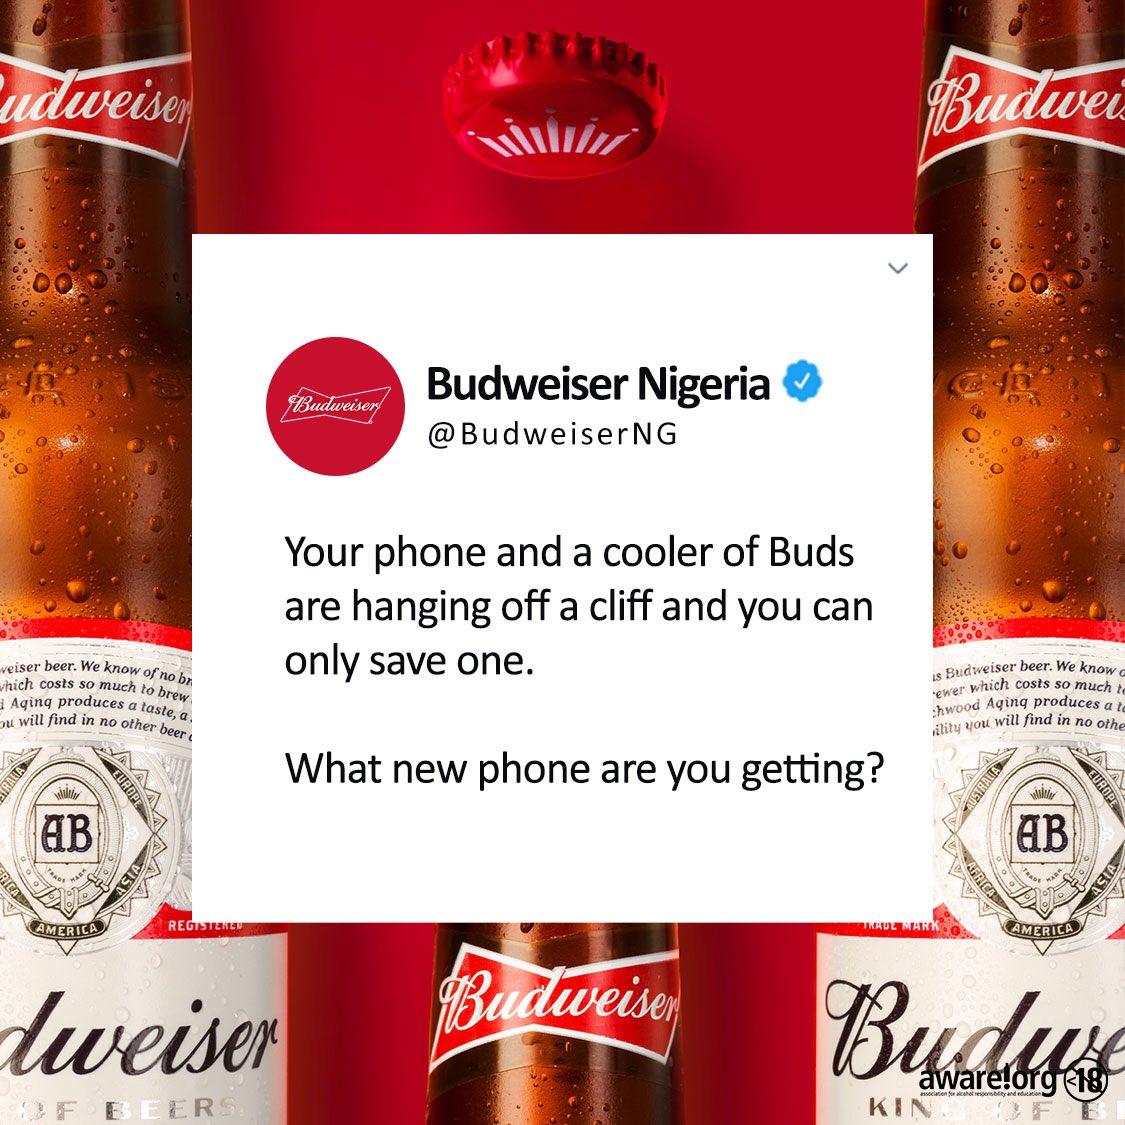 Your phone and a cooler of Buds are hanging from a cliff and you can only save one, what new phone are you getting?  #SmoothForNaijaKings #BeAKing https://t.co/Ee0K1B88jl